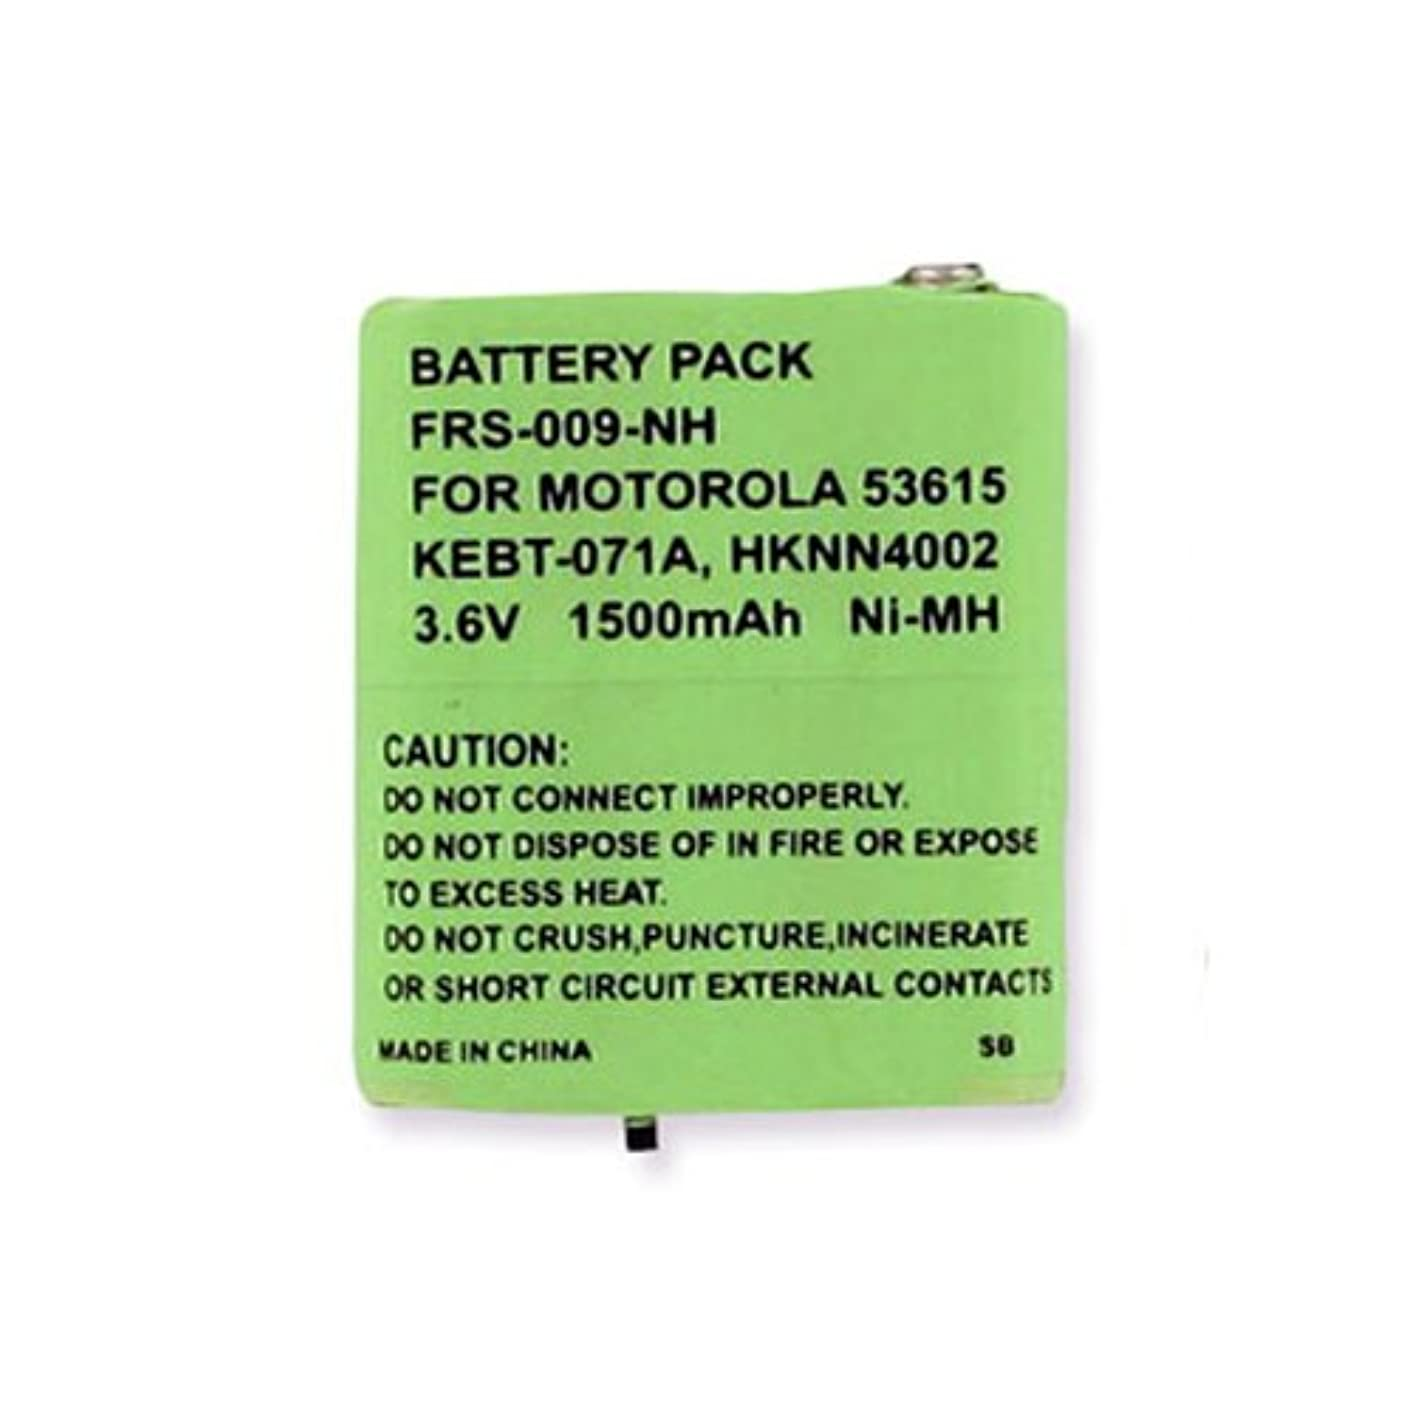 FRS-009-NH Ni-MH Battery - Rechargeable Ultra High Capacity (1500 mAh) - replacement for Motorola 53615 Battery